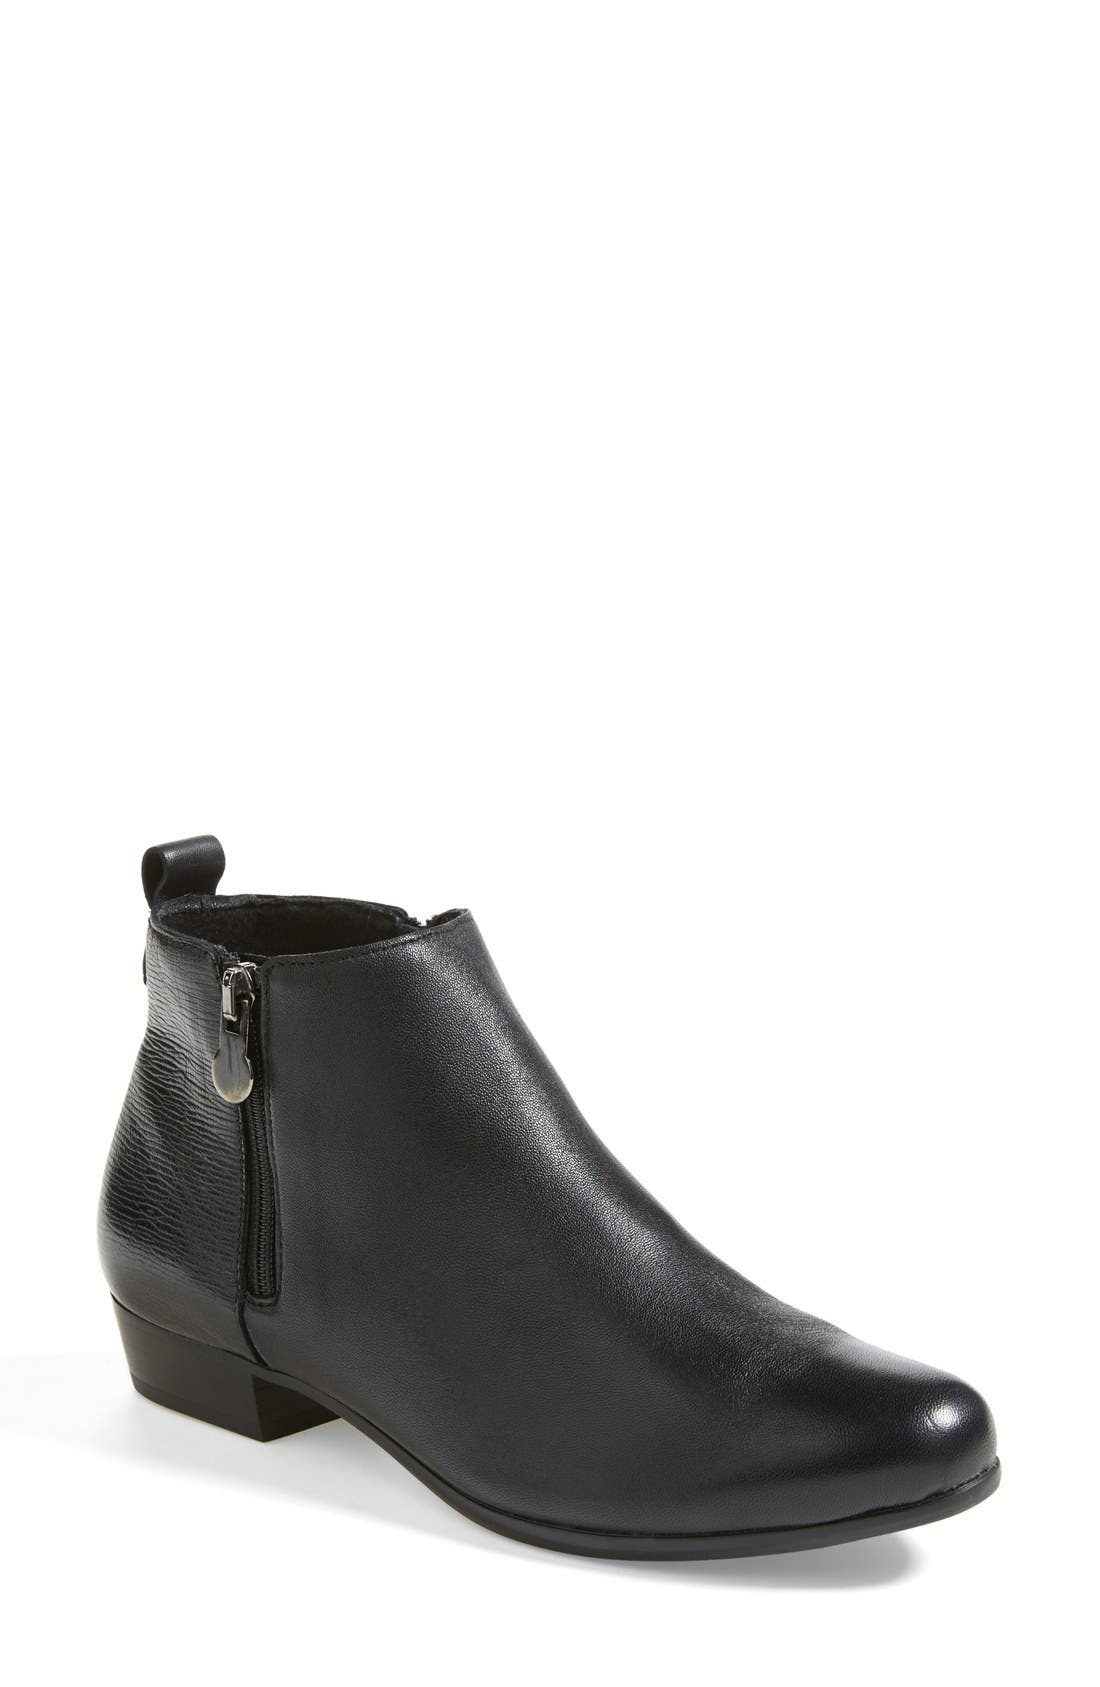 MUNRO, Lexi Boot, Main thumbnail 1, color, BLACK LEATHER